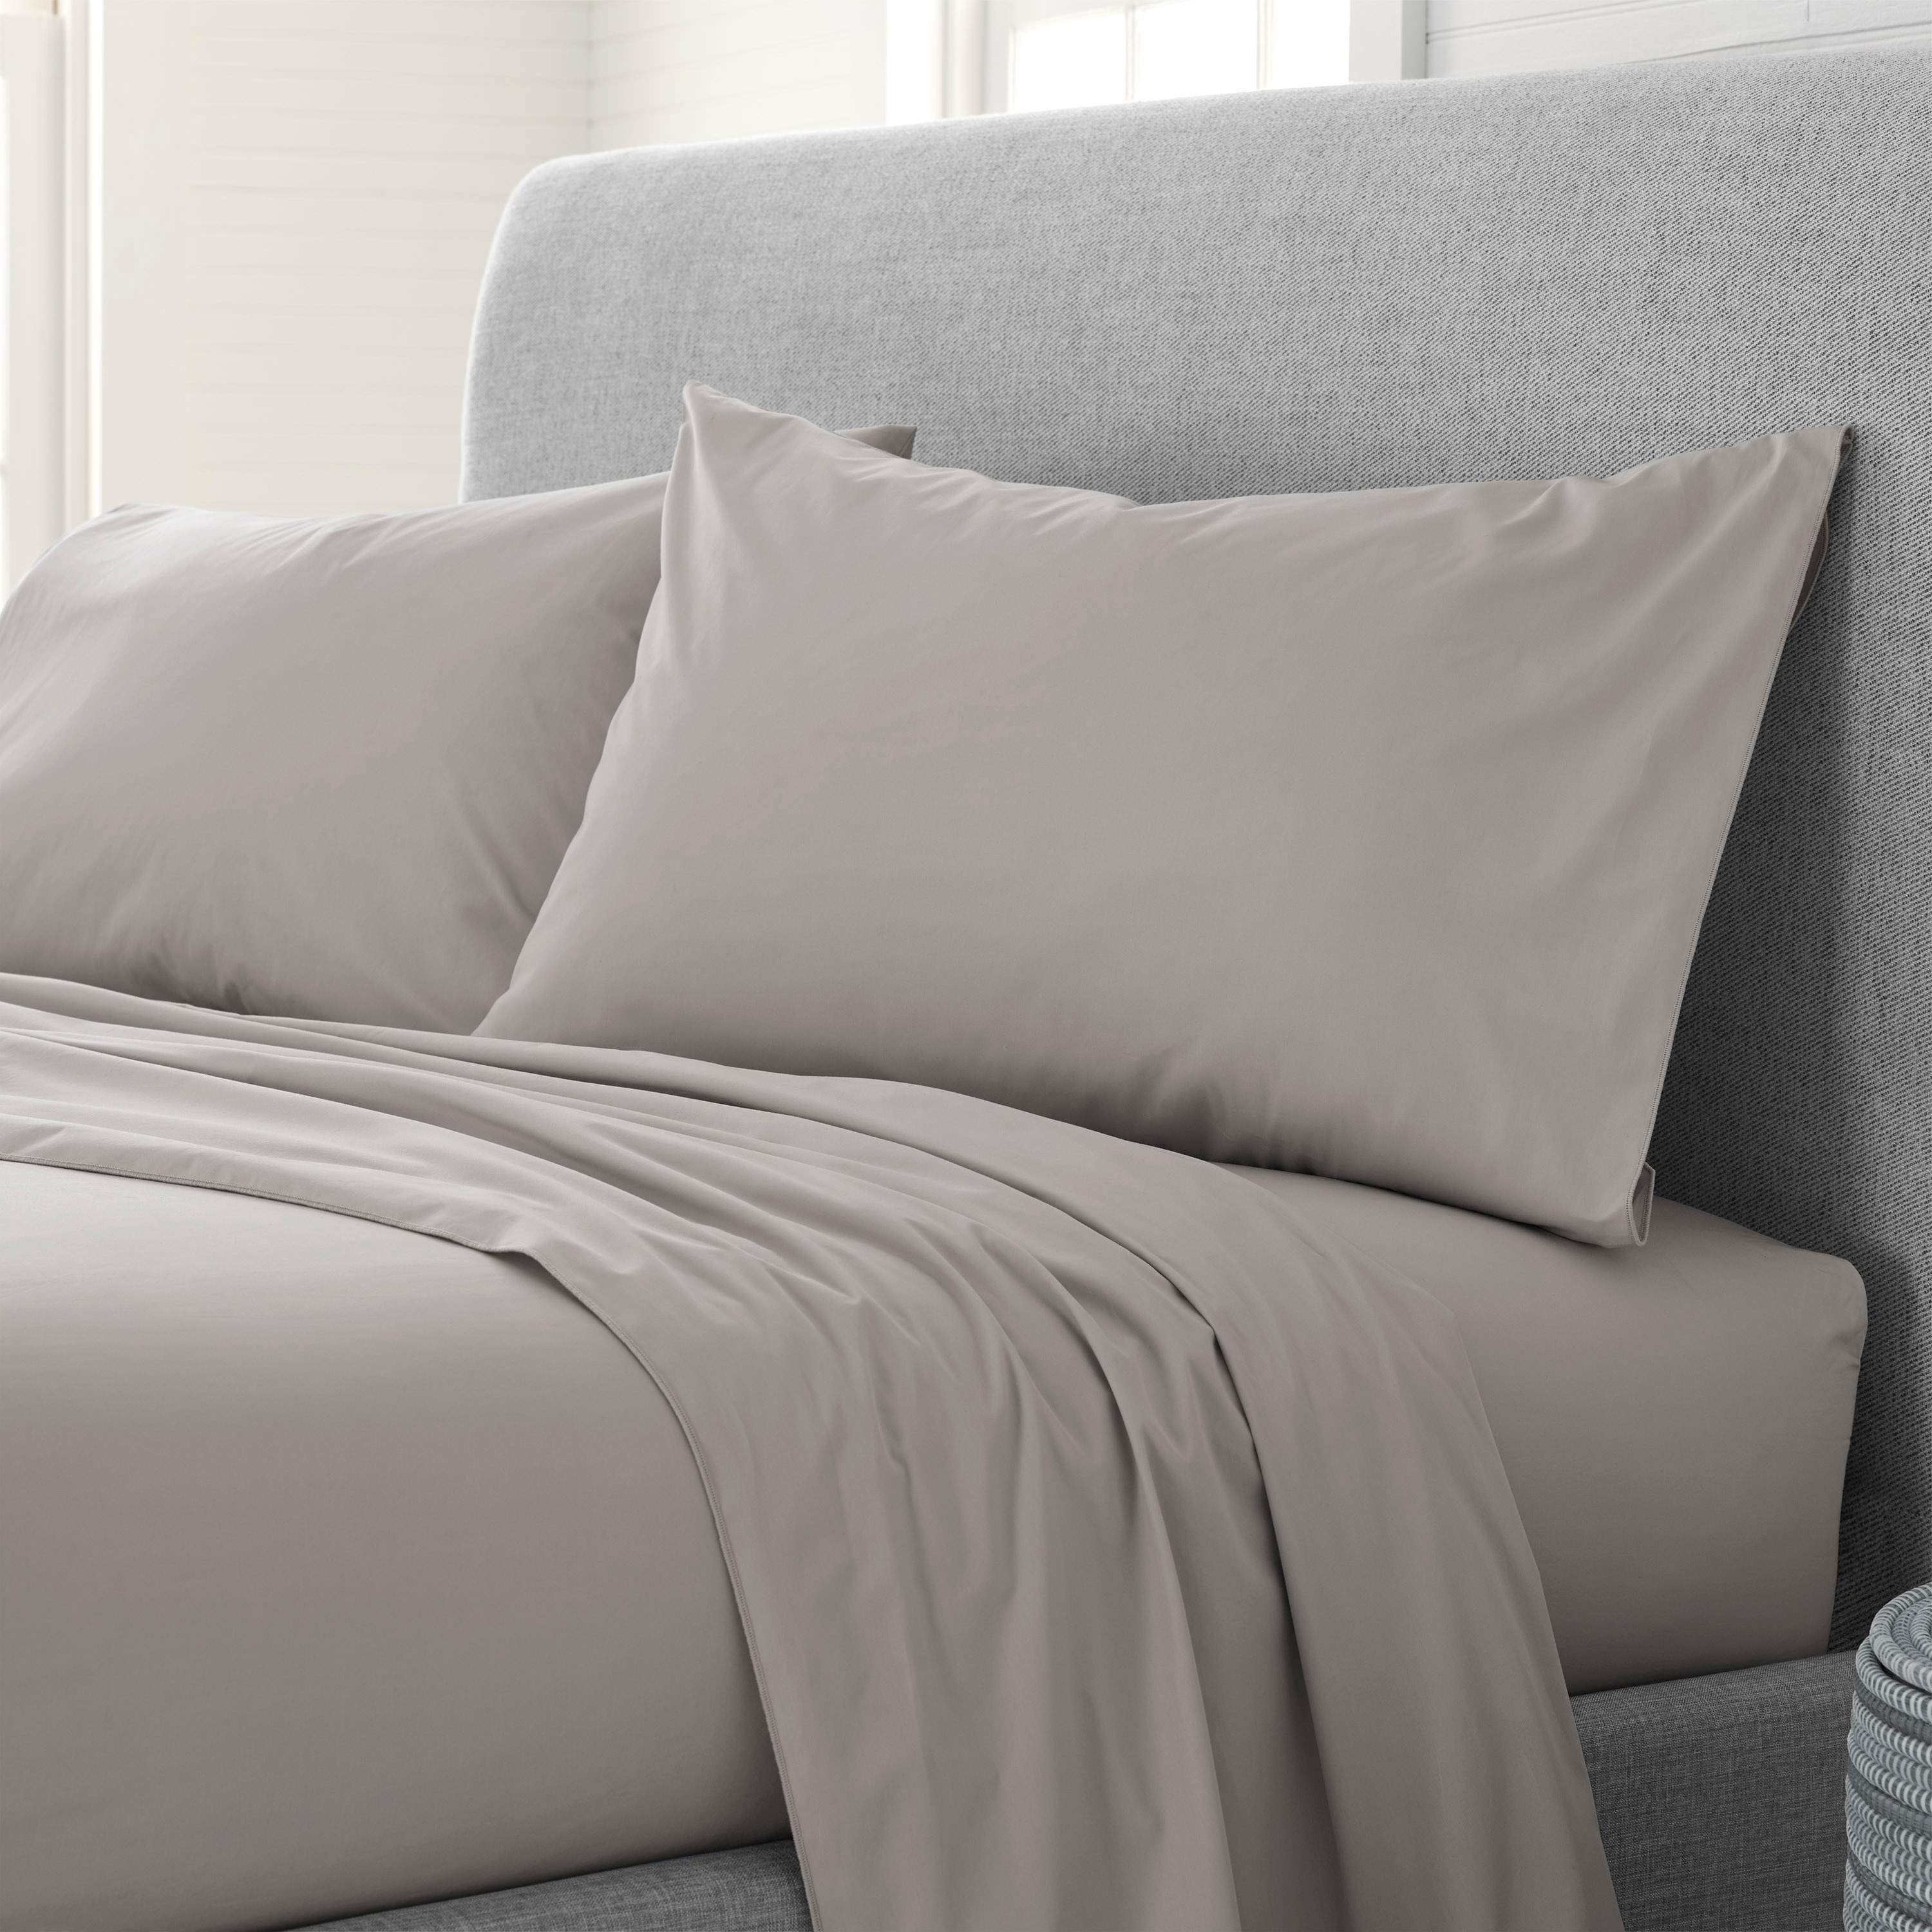 """4 TWIN FITTED SHEETS  WHITE USED 39/"""" BY 75 /"""" USED FITTED SHEET"""